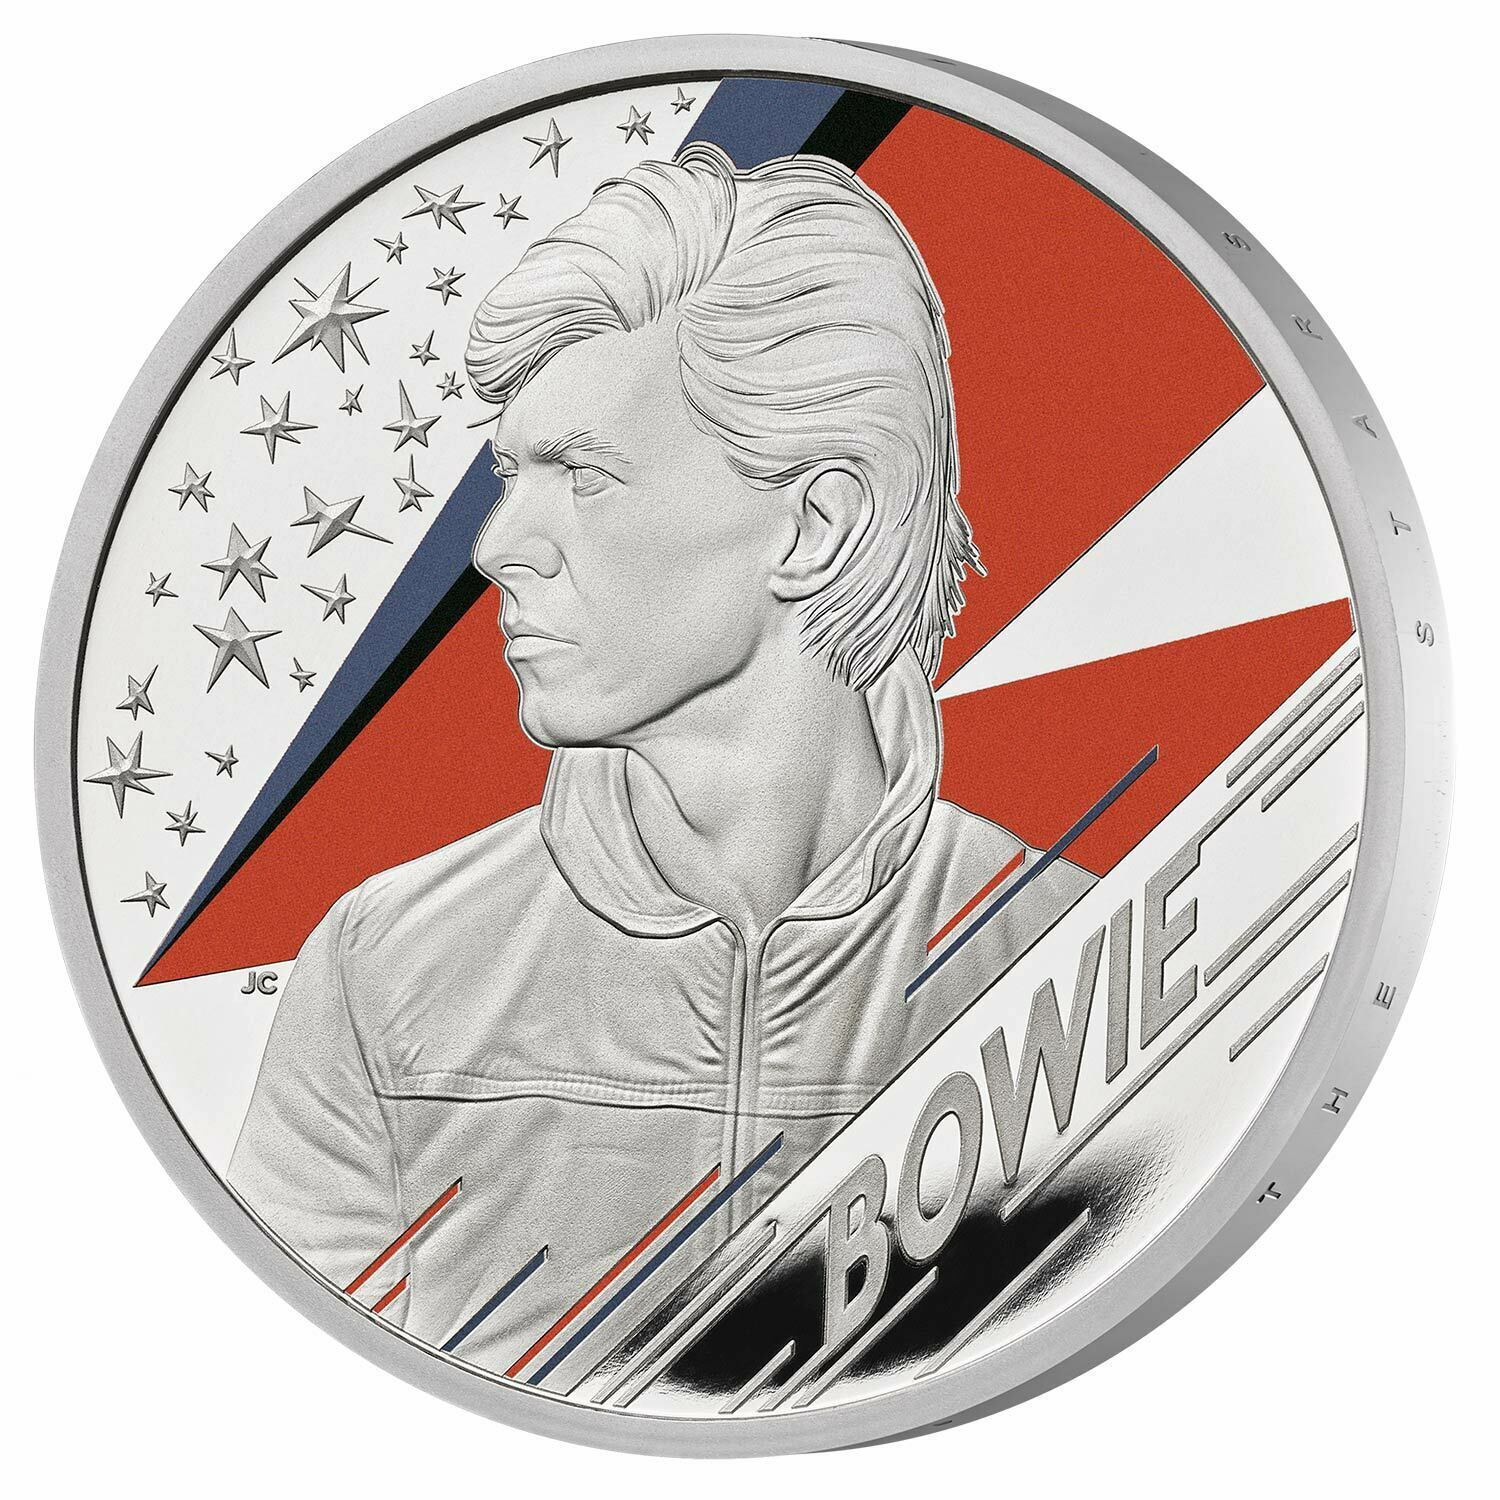 David Bowie  Music Legends 1 OZ silver  Coin Proof - zvìtšit obrázek